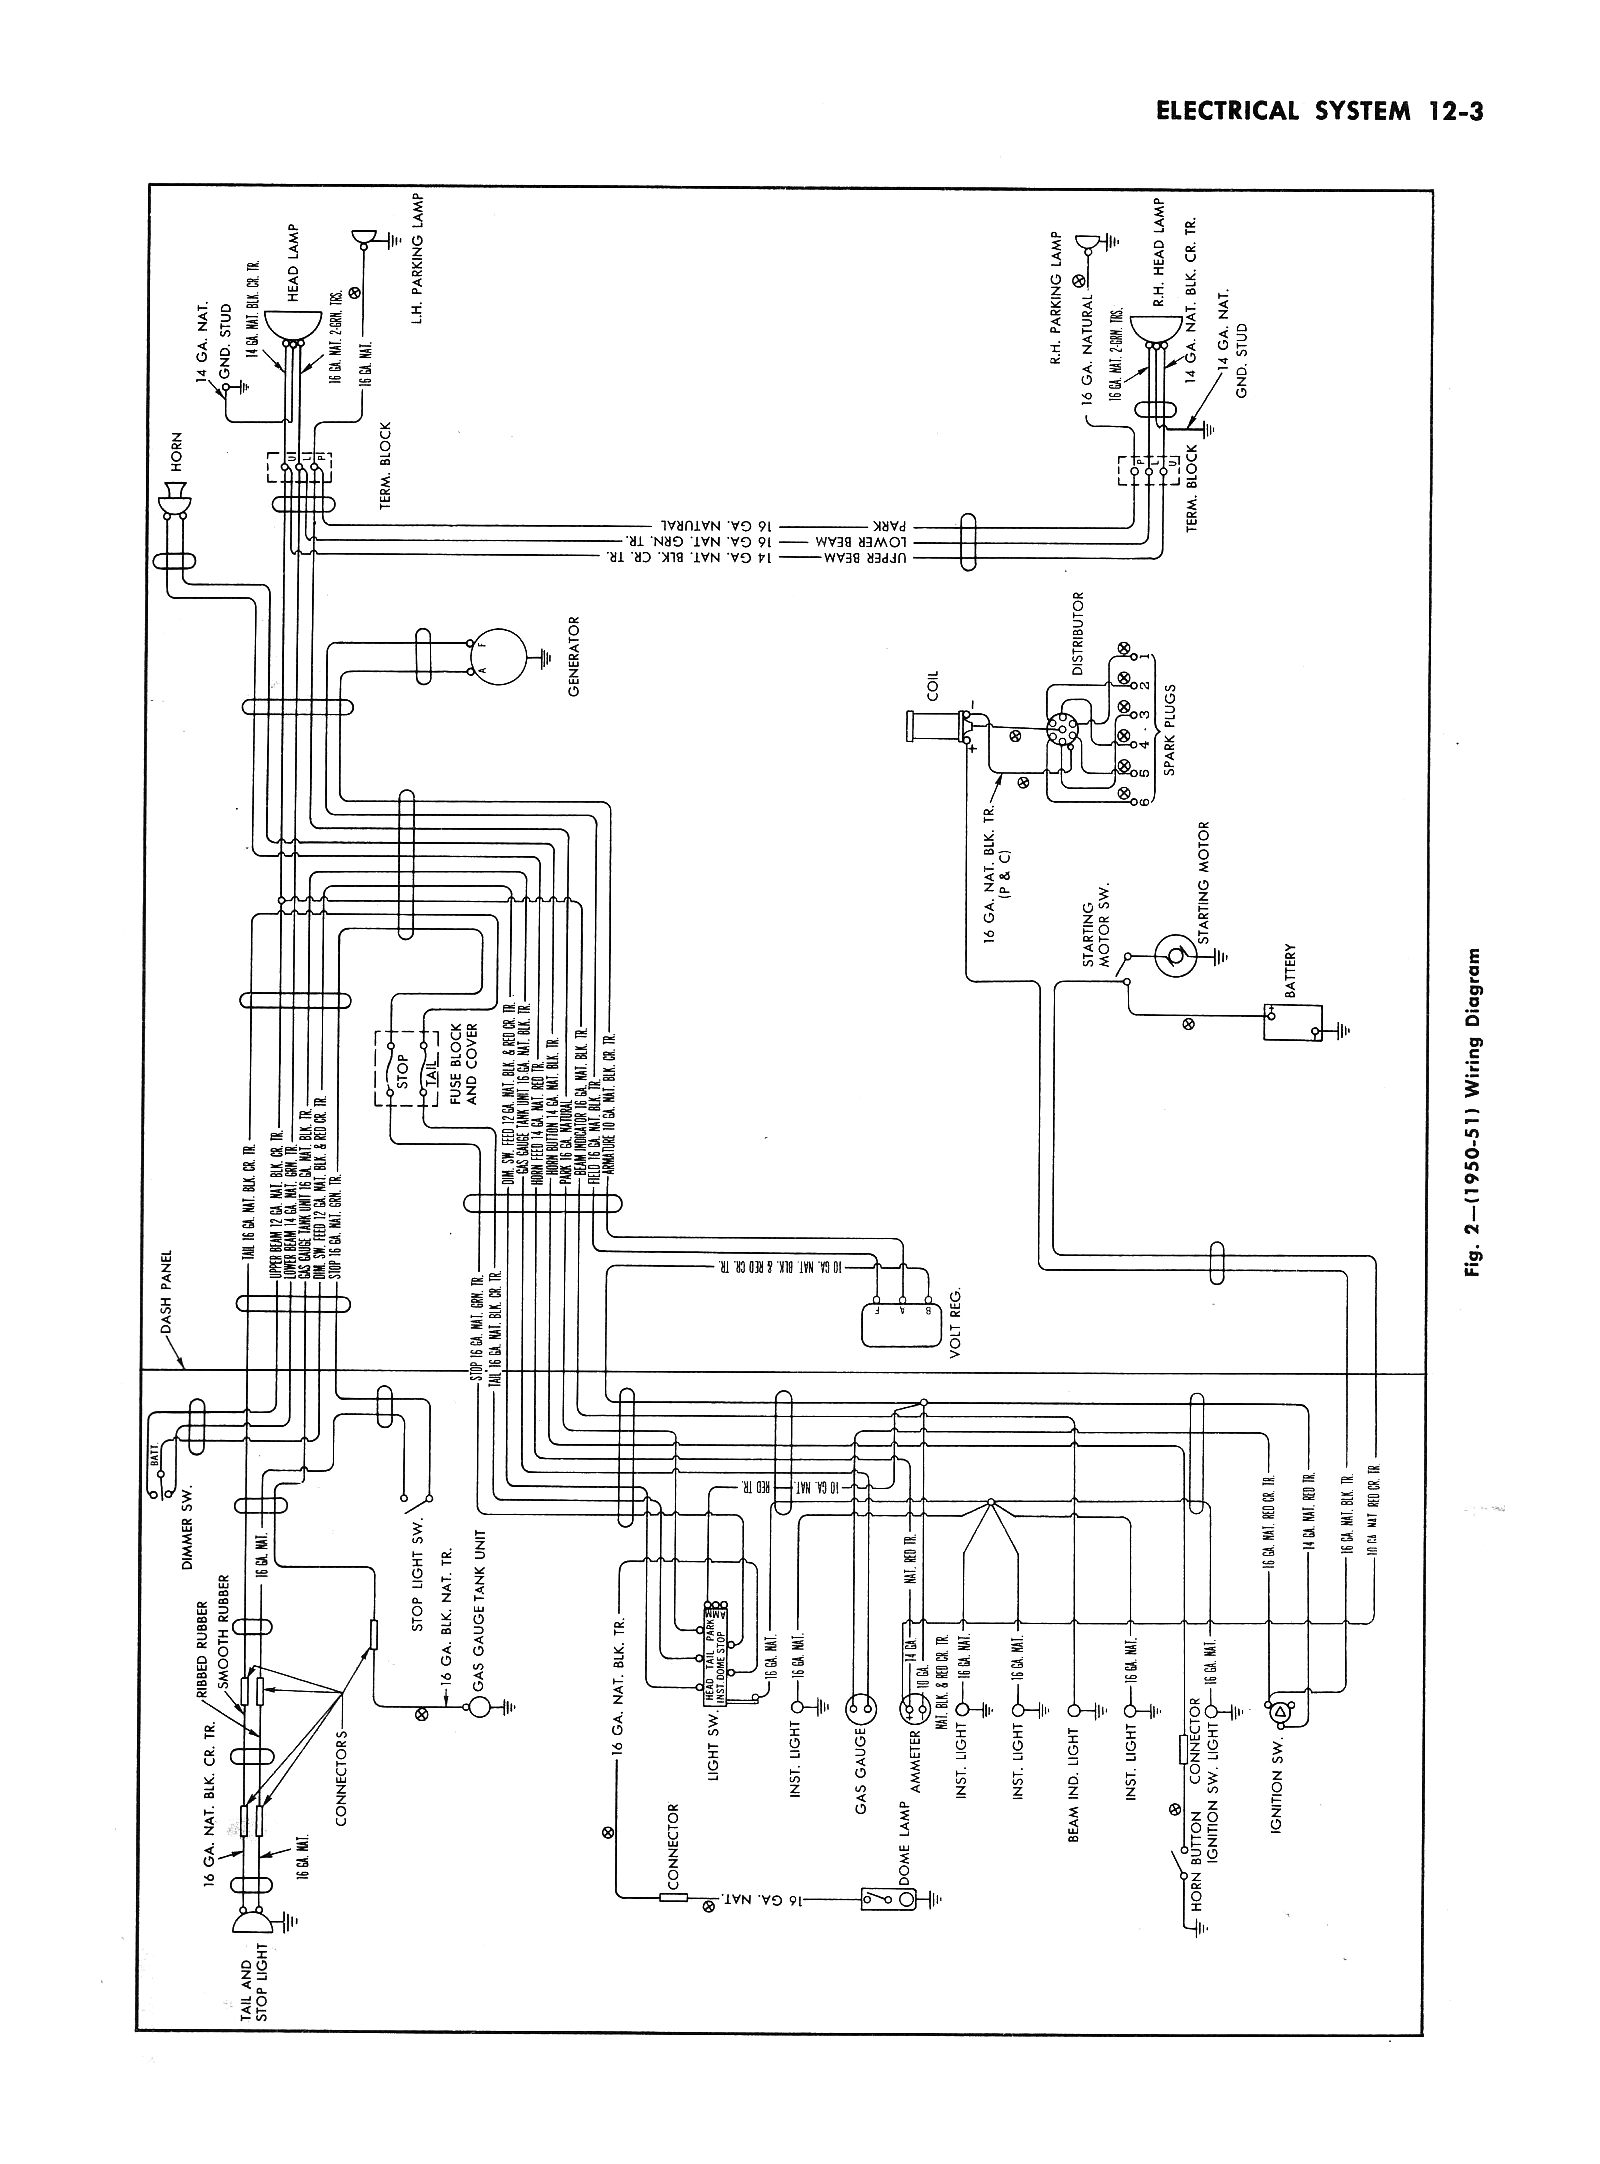 hight resolution of 1942 chevy wiring diagram detailed schematics diagram rh keyplusrubber com gm wiring harness 4l80e wiring harness